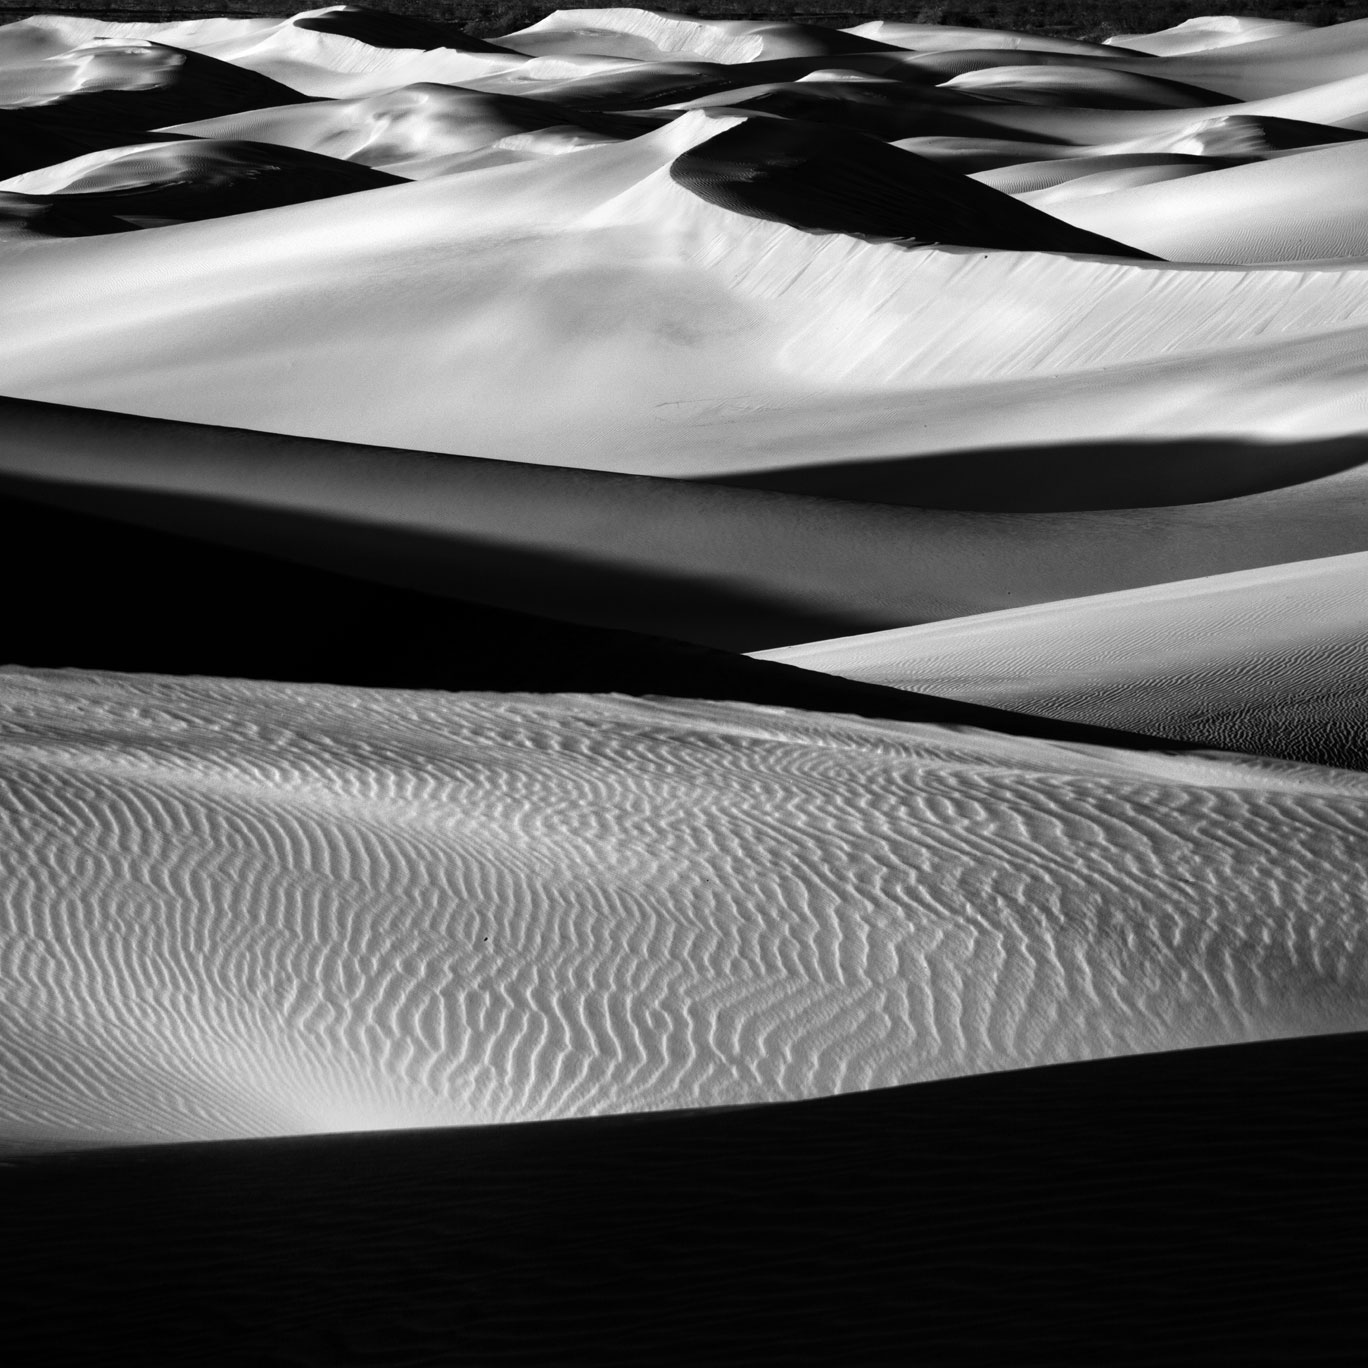 Mesquite Flats Sand Dunes, Death Valley